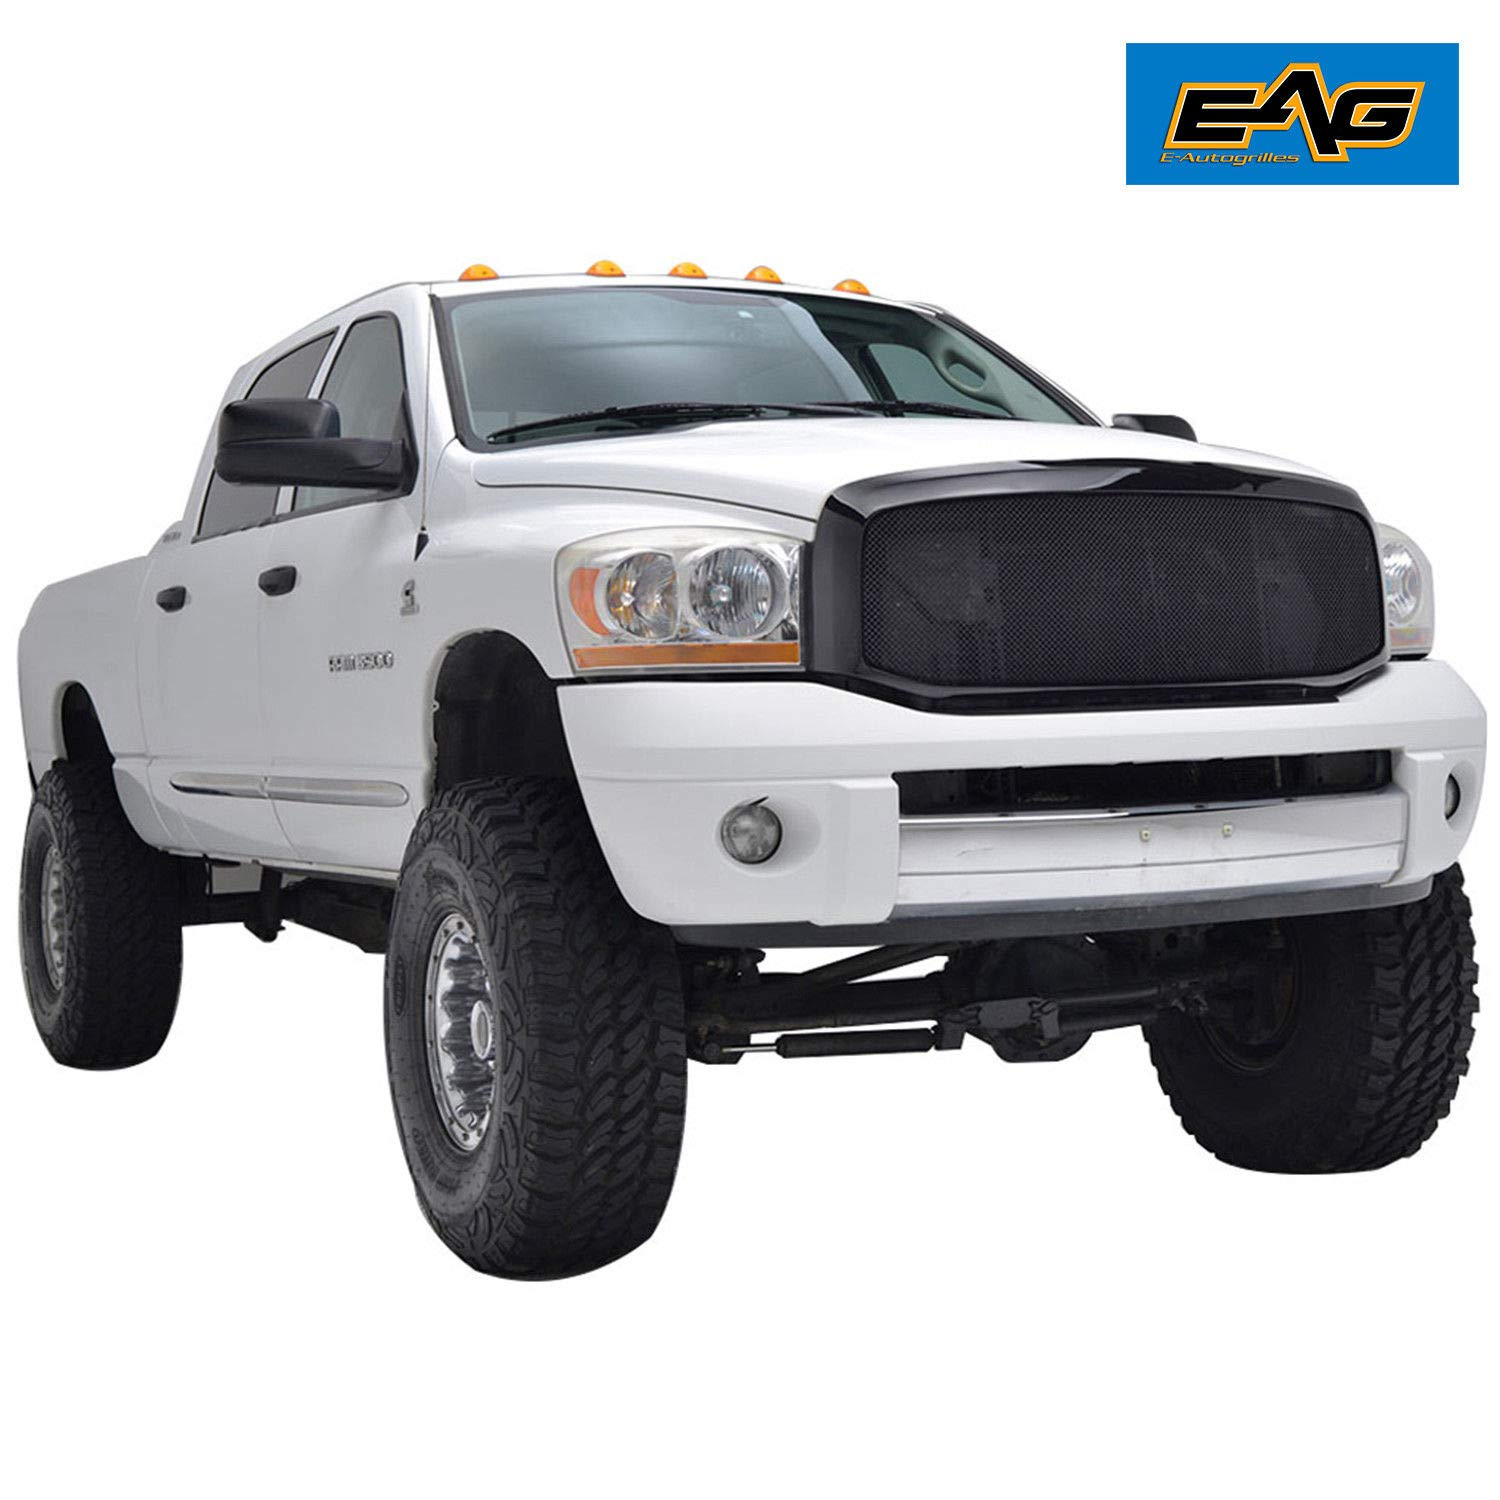 Black Ram 2500 >> Eag 06 09 Dodge Ram 1500 2500 3500 Mesh Grille Black Stainless Steel With Abs Shell